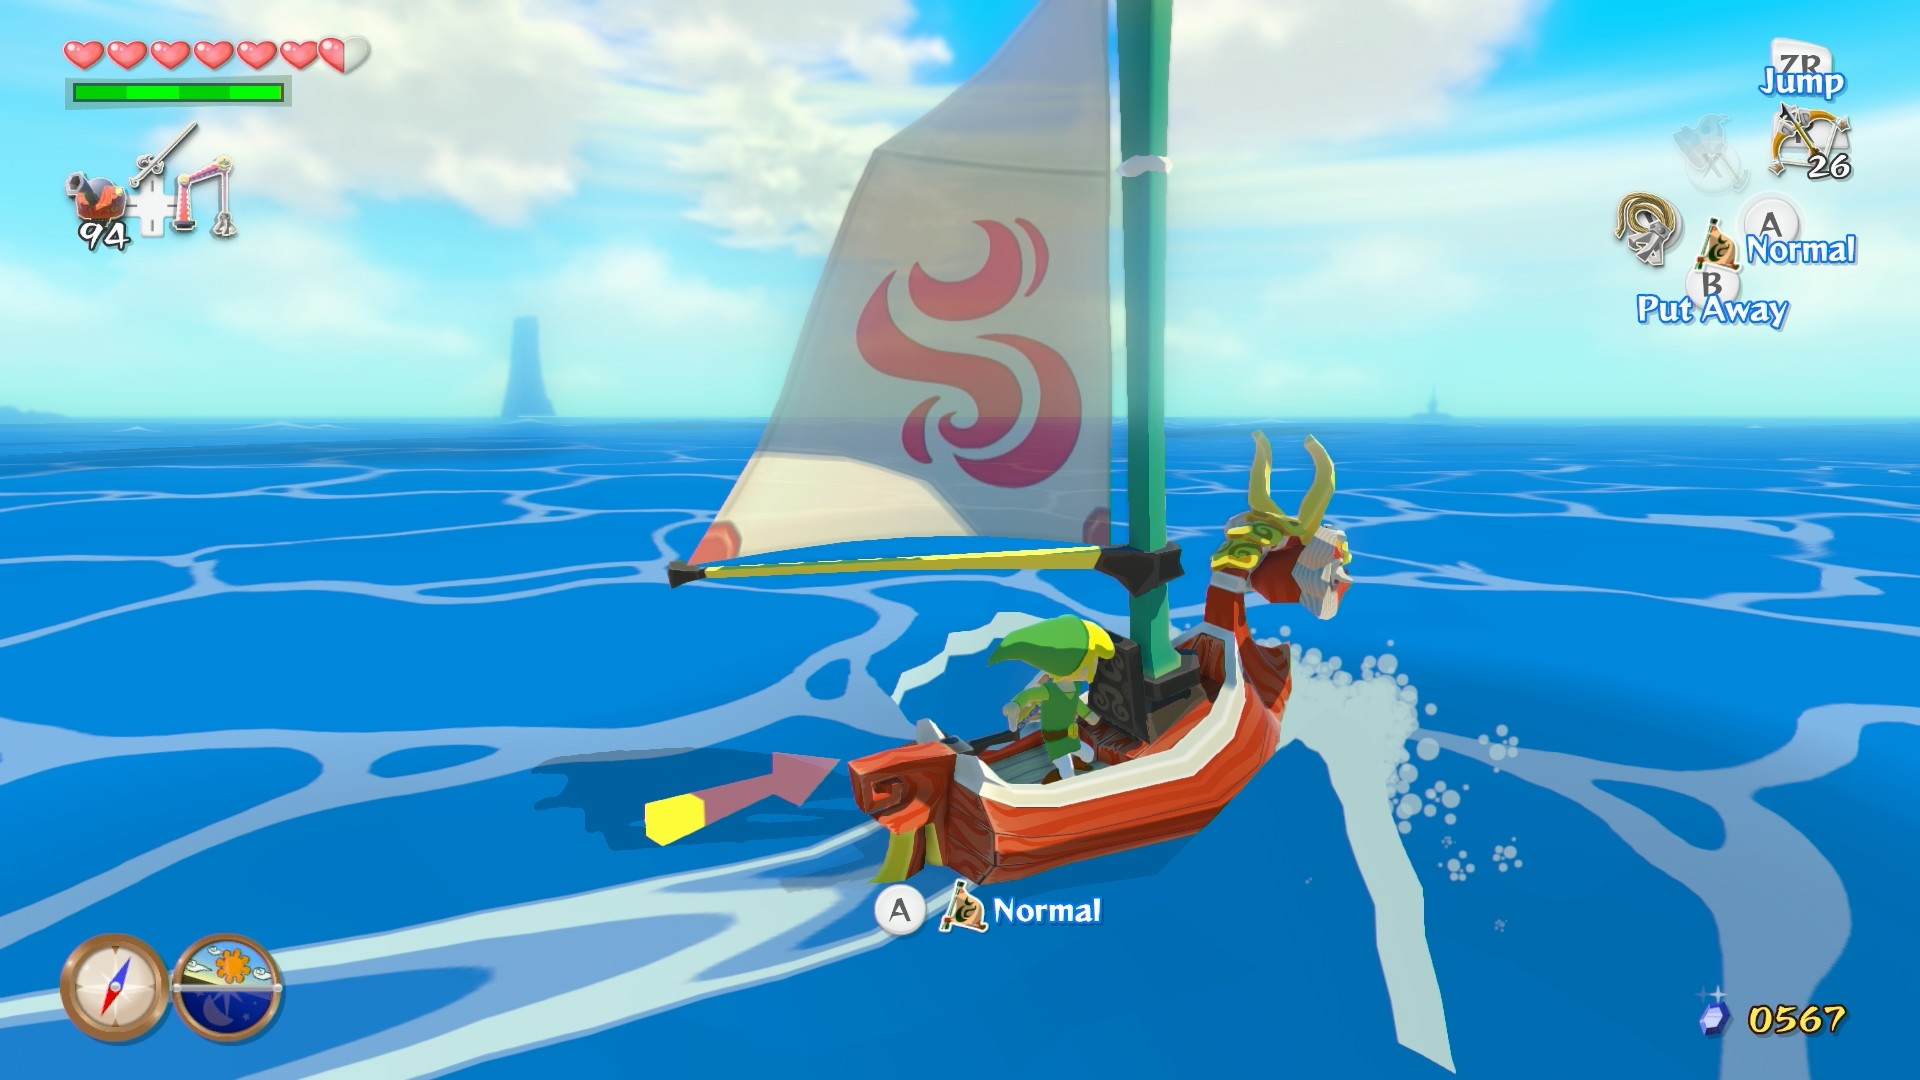 Expect to see The Legend of Zelda: Wind Waker HD in October 2013 for the  Wii U.